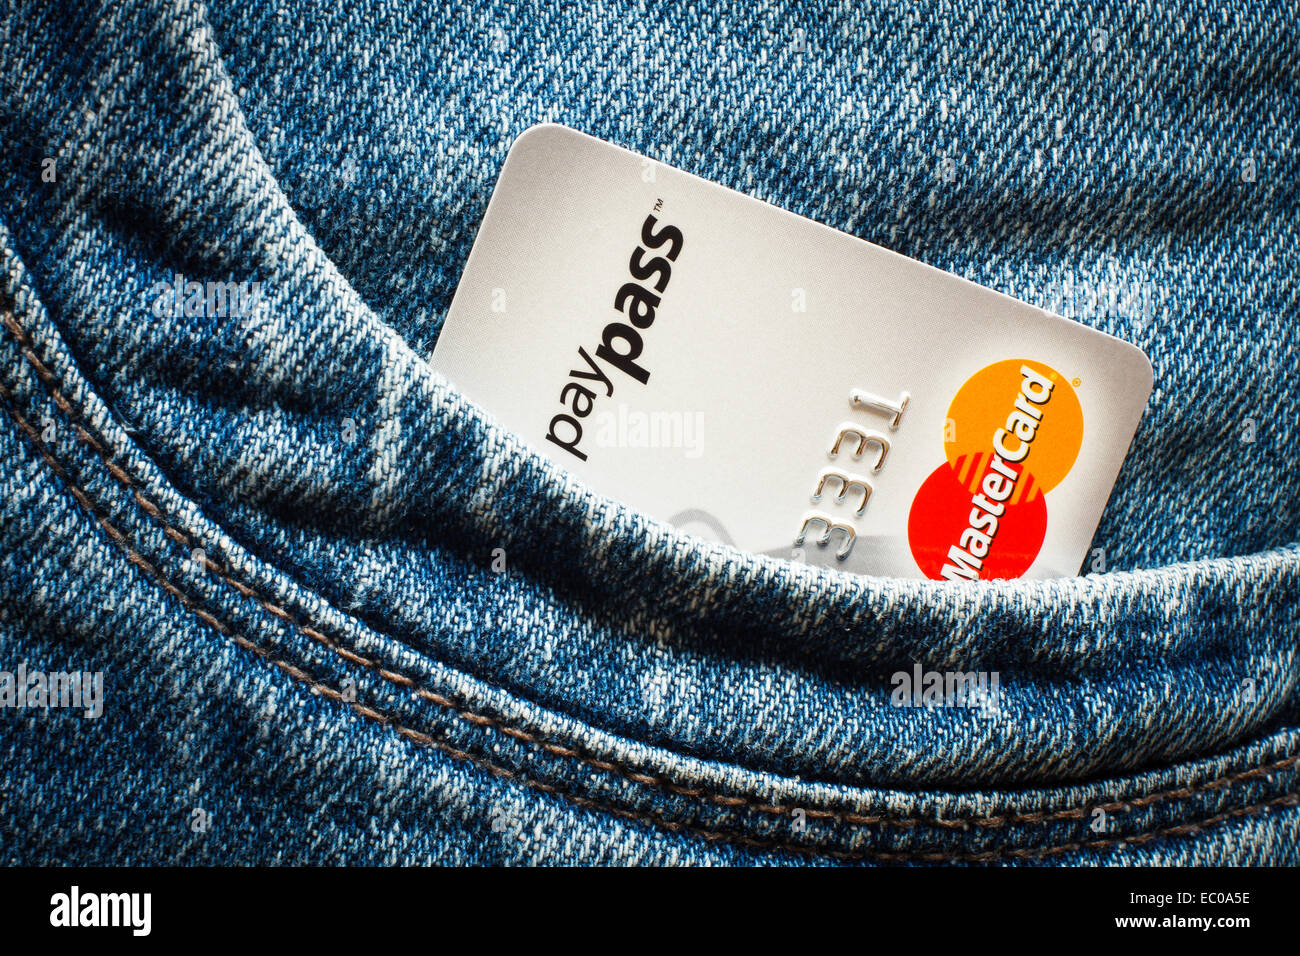 GDANSK, POLAND - 16 APRIL 2014. Credit cards with paypass technology. Editorial use only - Stock Image